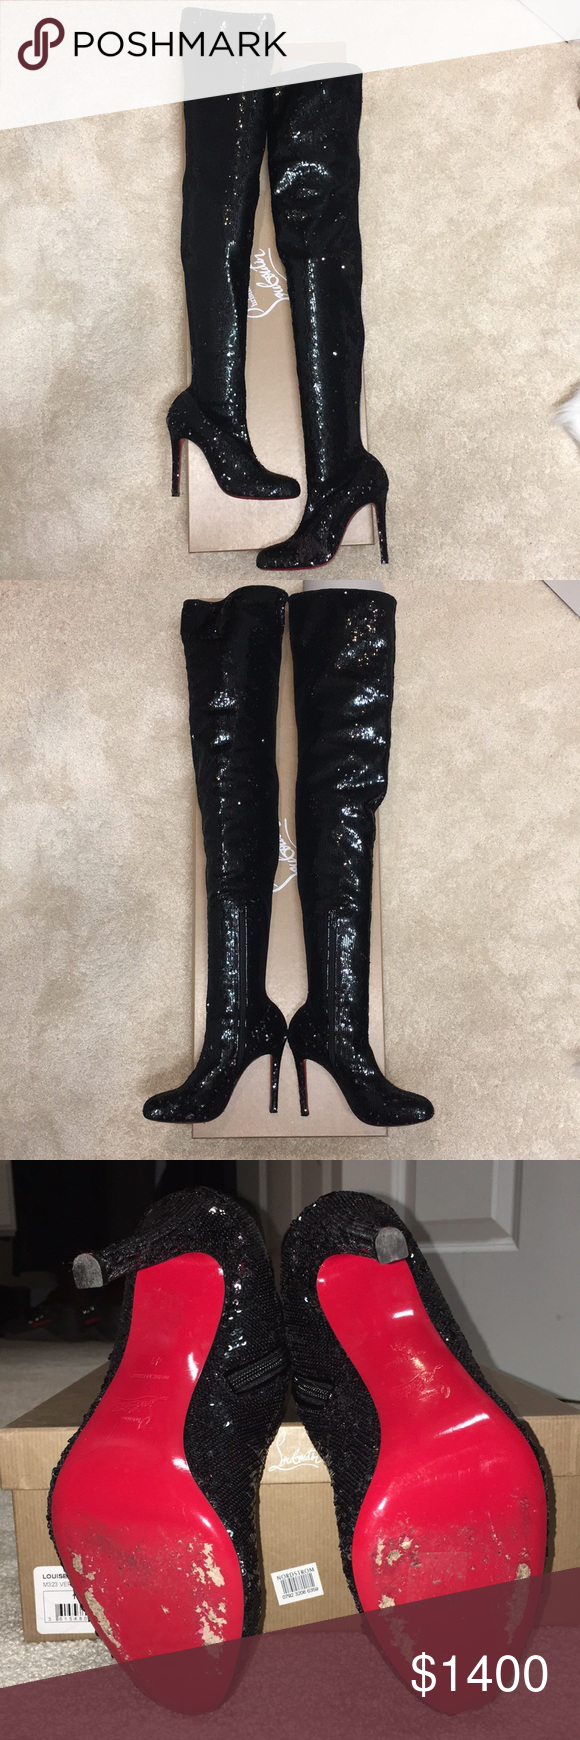 8c5f365729d Christian Louboutin Louise thigh high sequin boots Louboutin Louise 100  thigh high sequin boots. Color changes from black to a gunmetal silver when  brushed ...